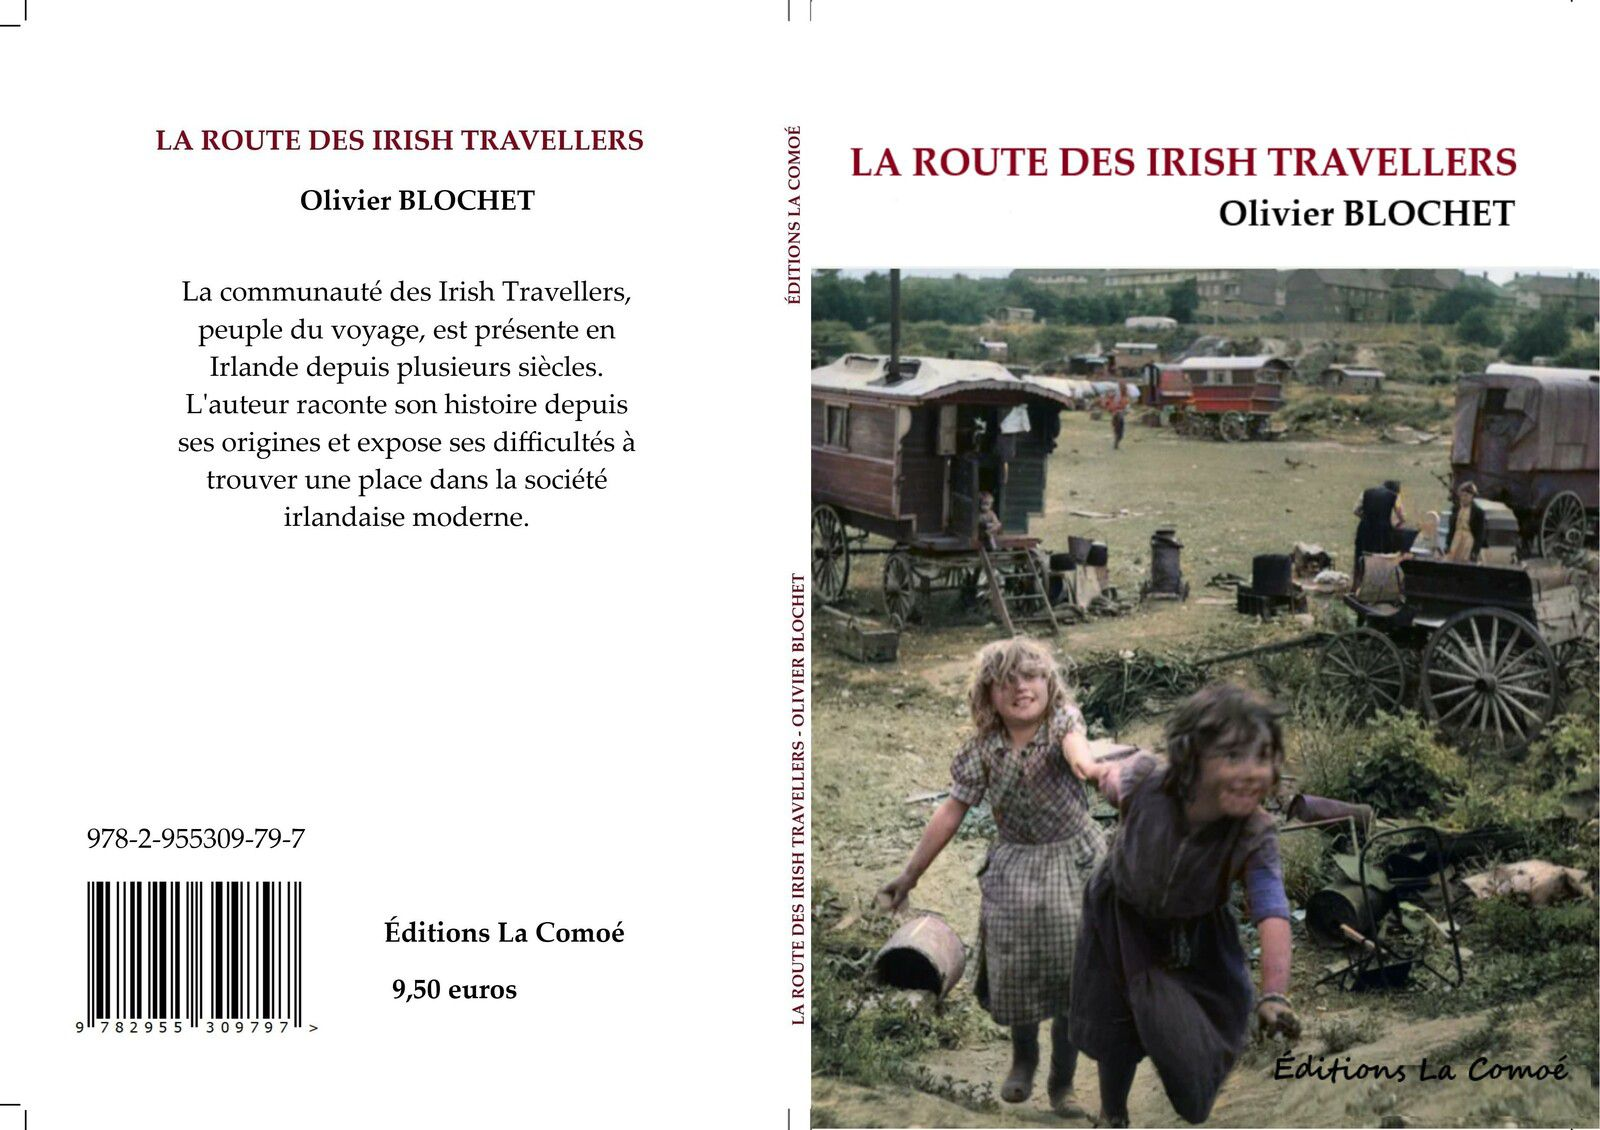 72 pages - 9,50 euros (2021)